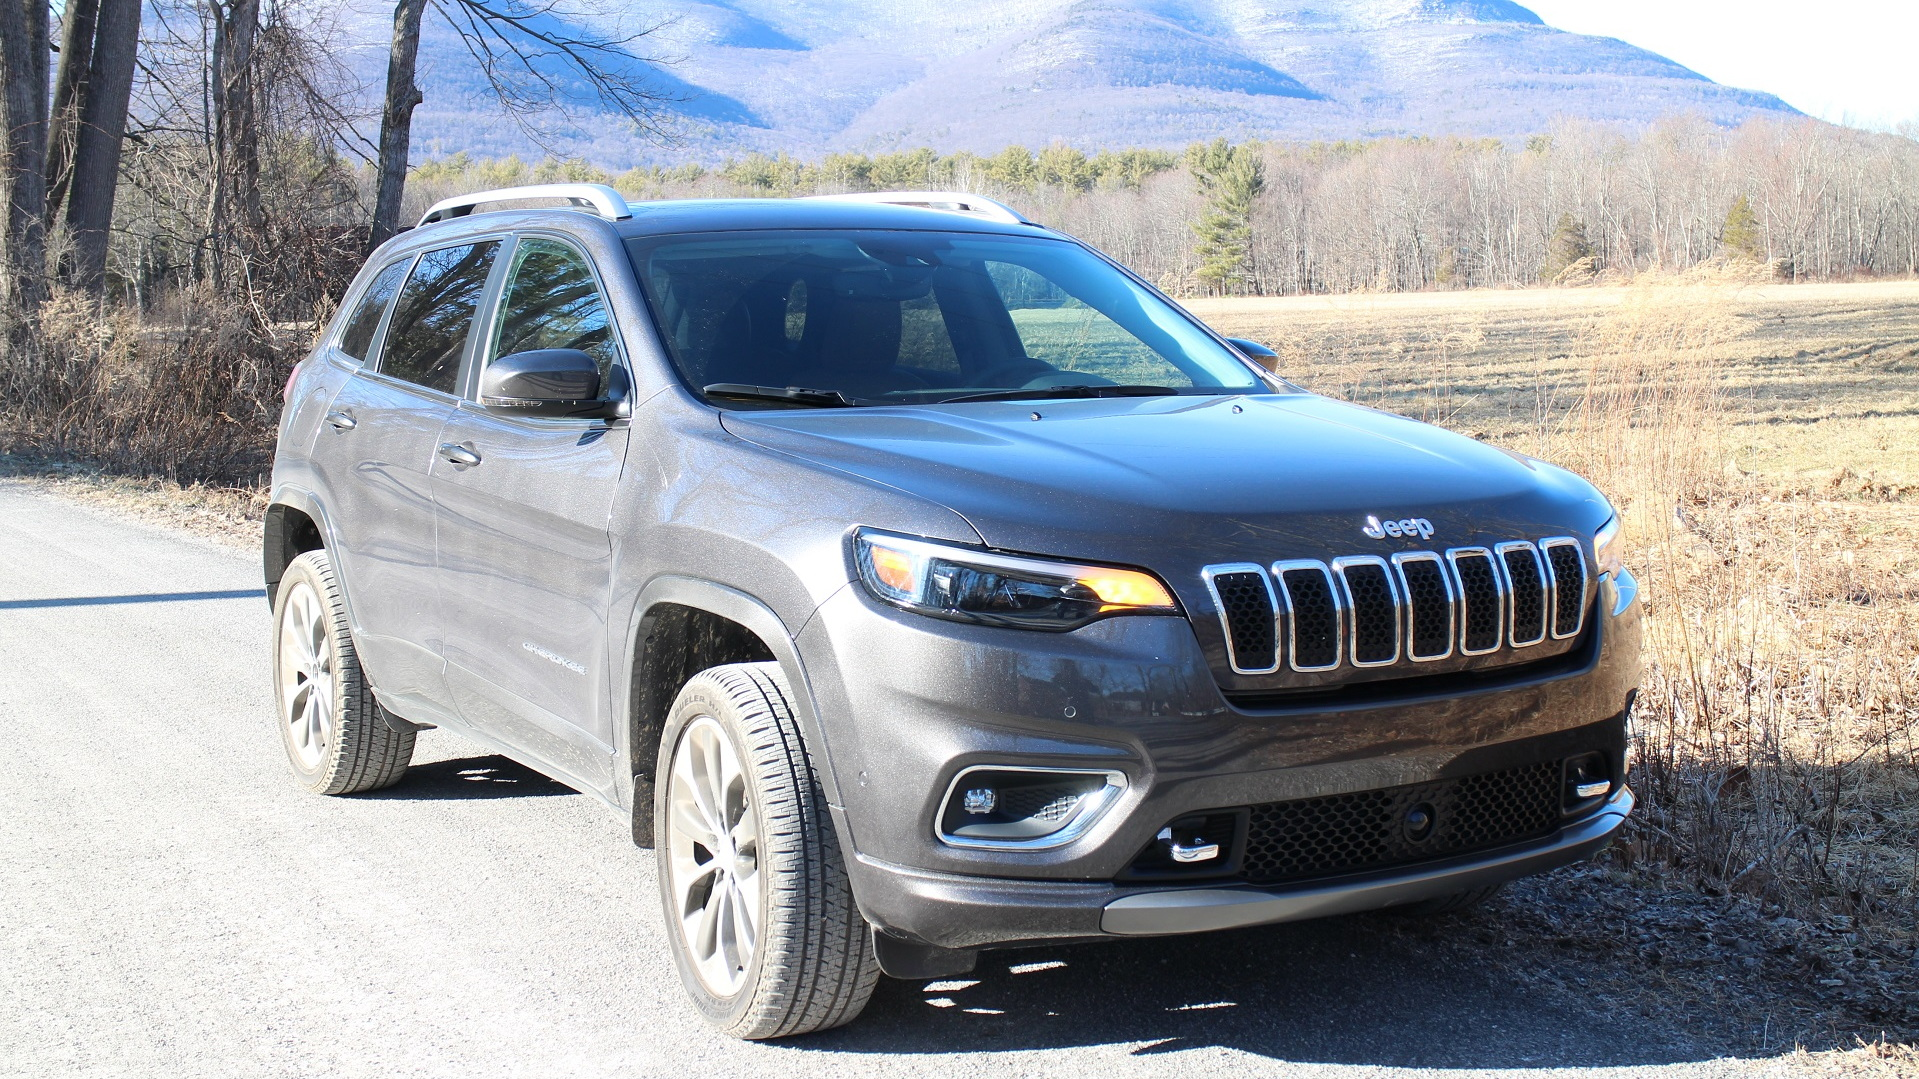 2019 Jeep Cherokee Overland, Hudson Valley, NY, Mar 2018